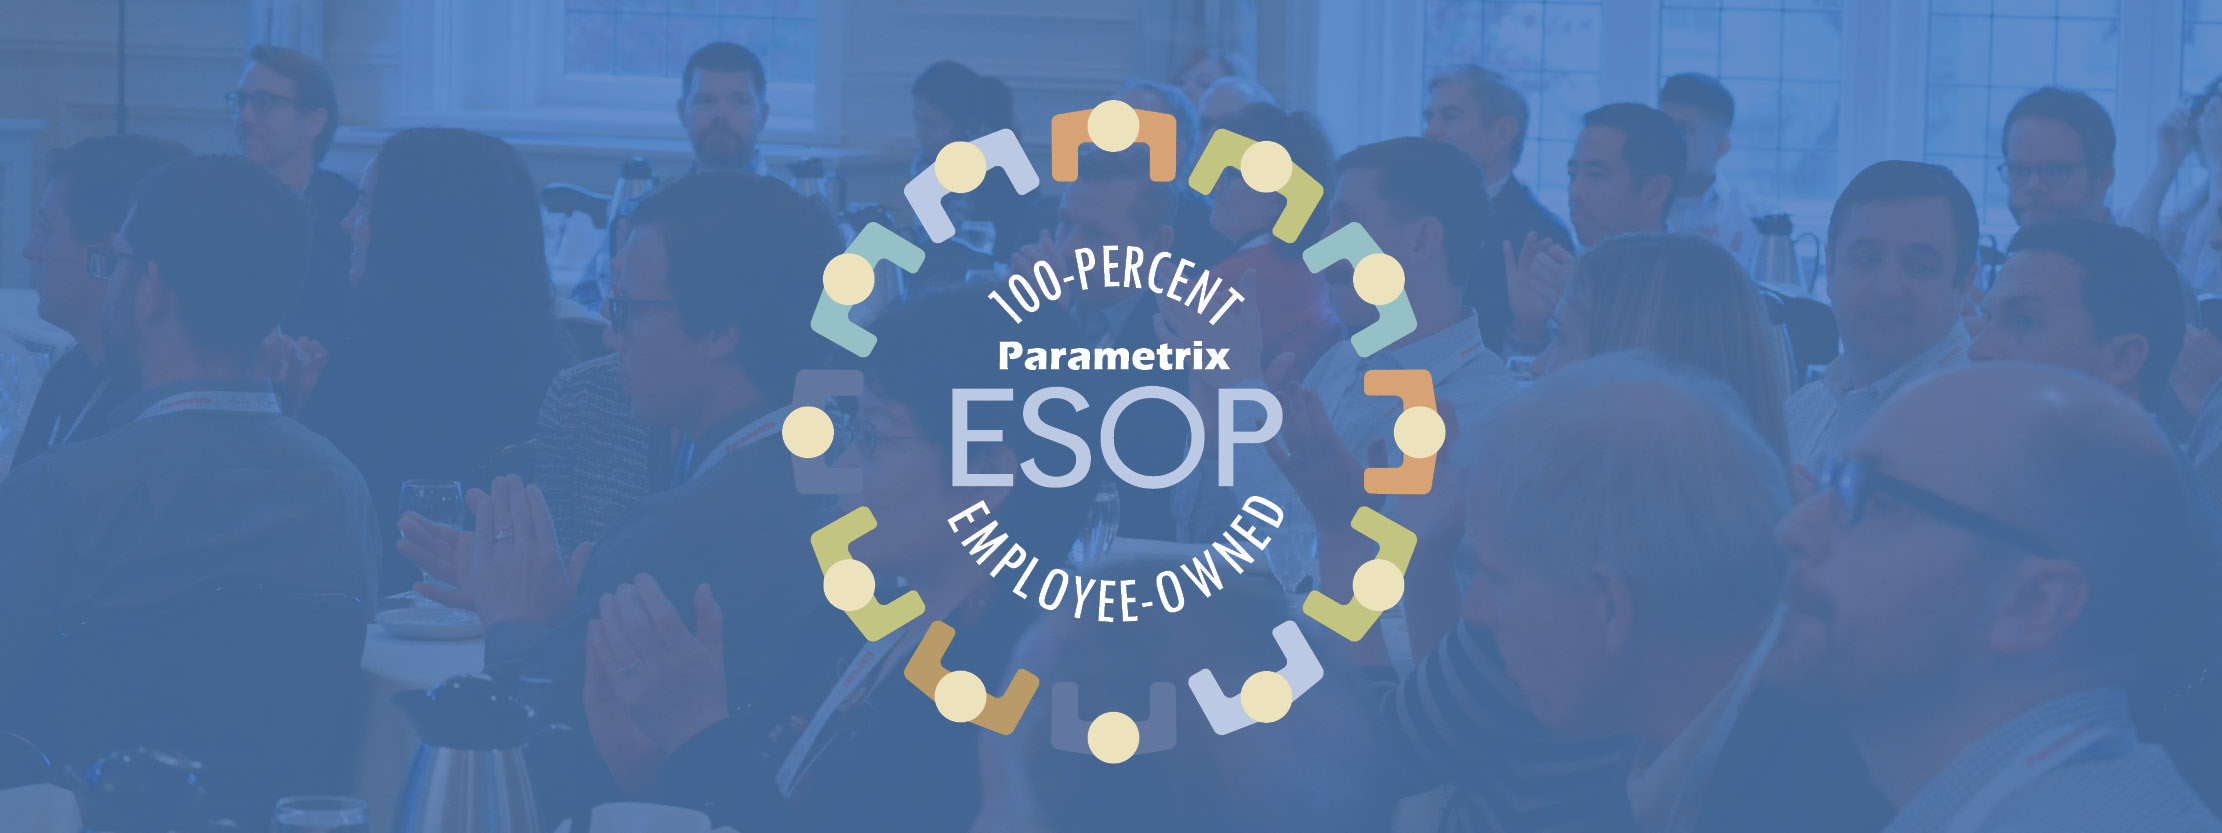 A blue image with people in the background and ESOP 100-percent employee-owned text